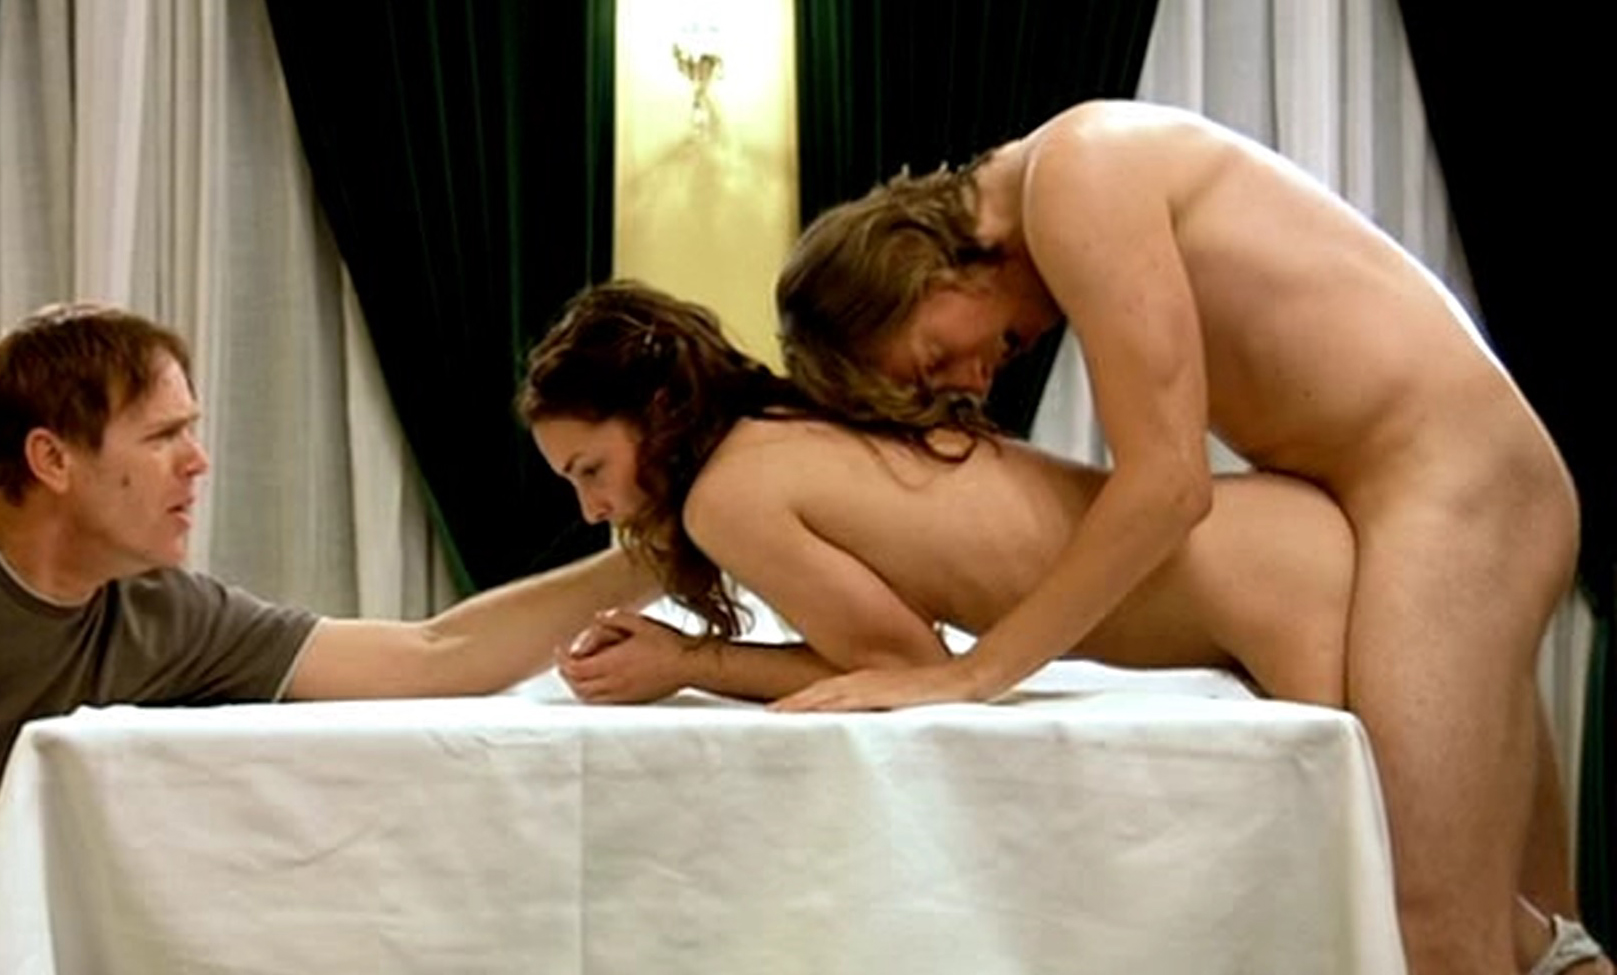 mimi rogers nude scene in full body massage movie - free video